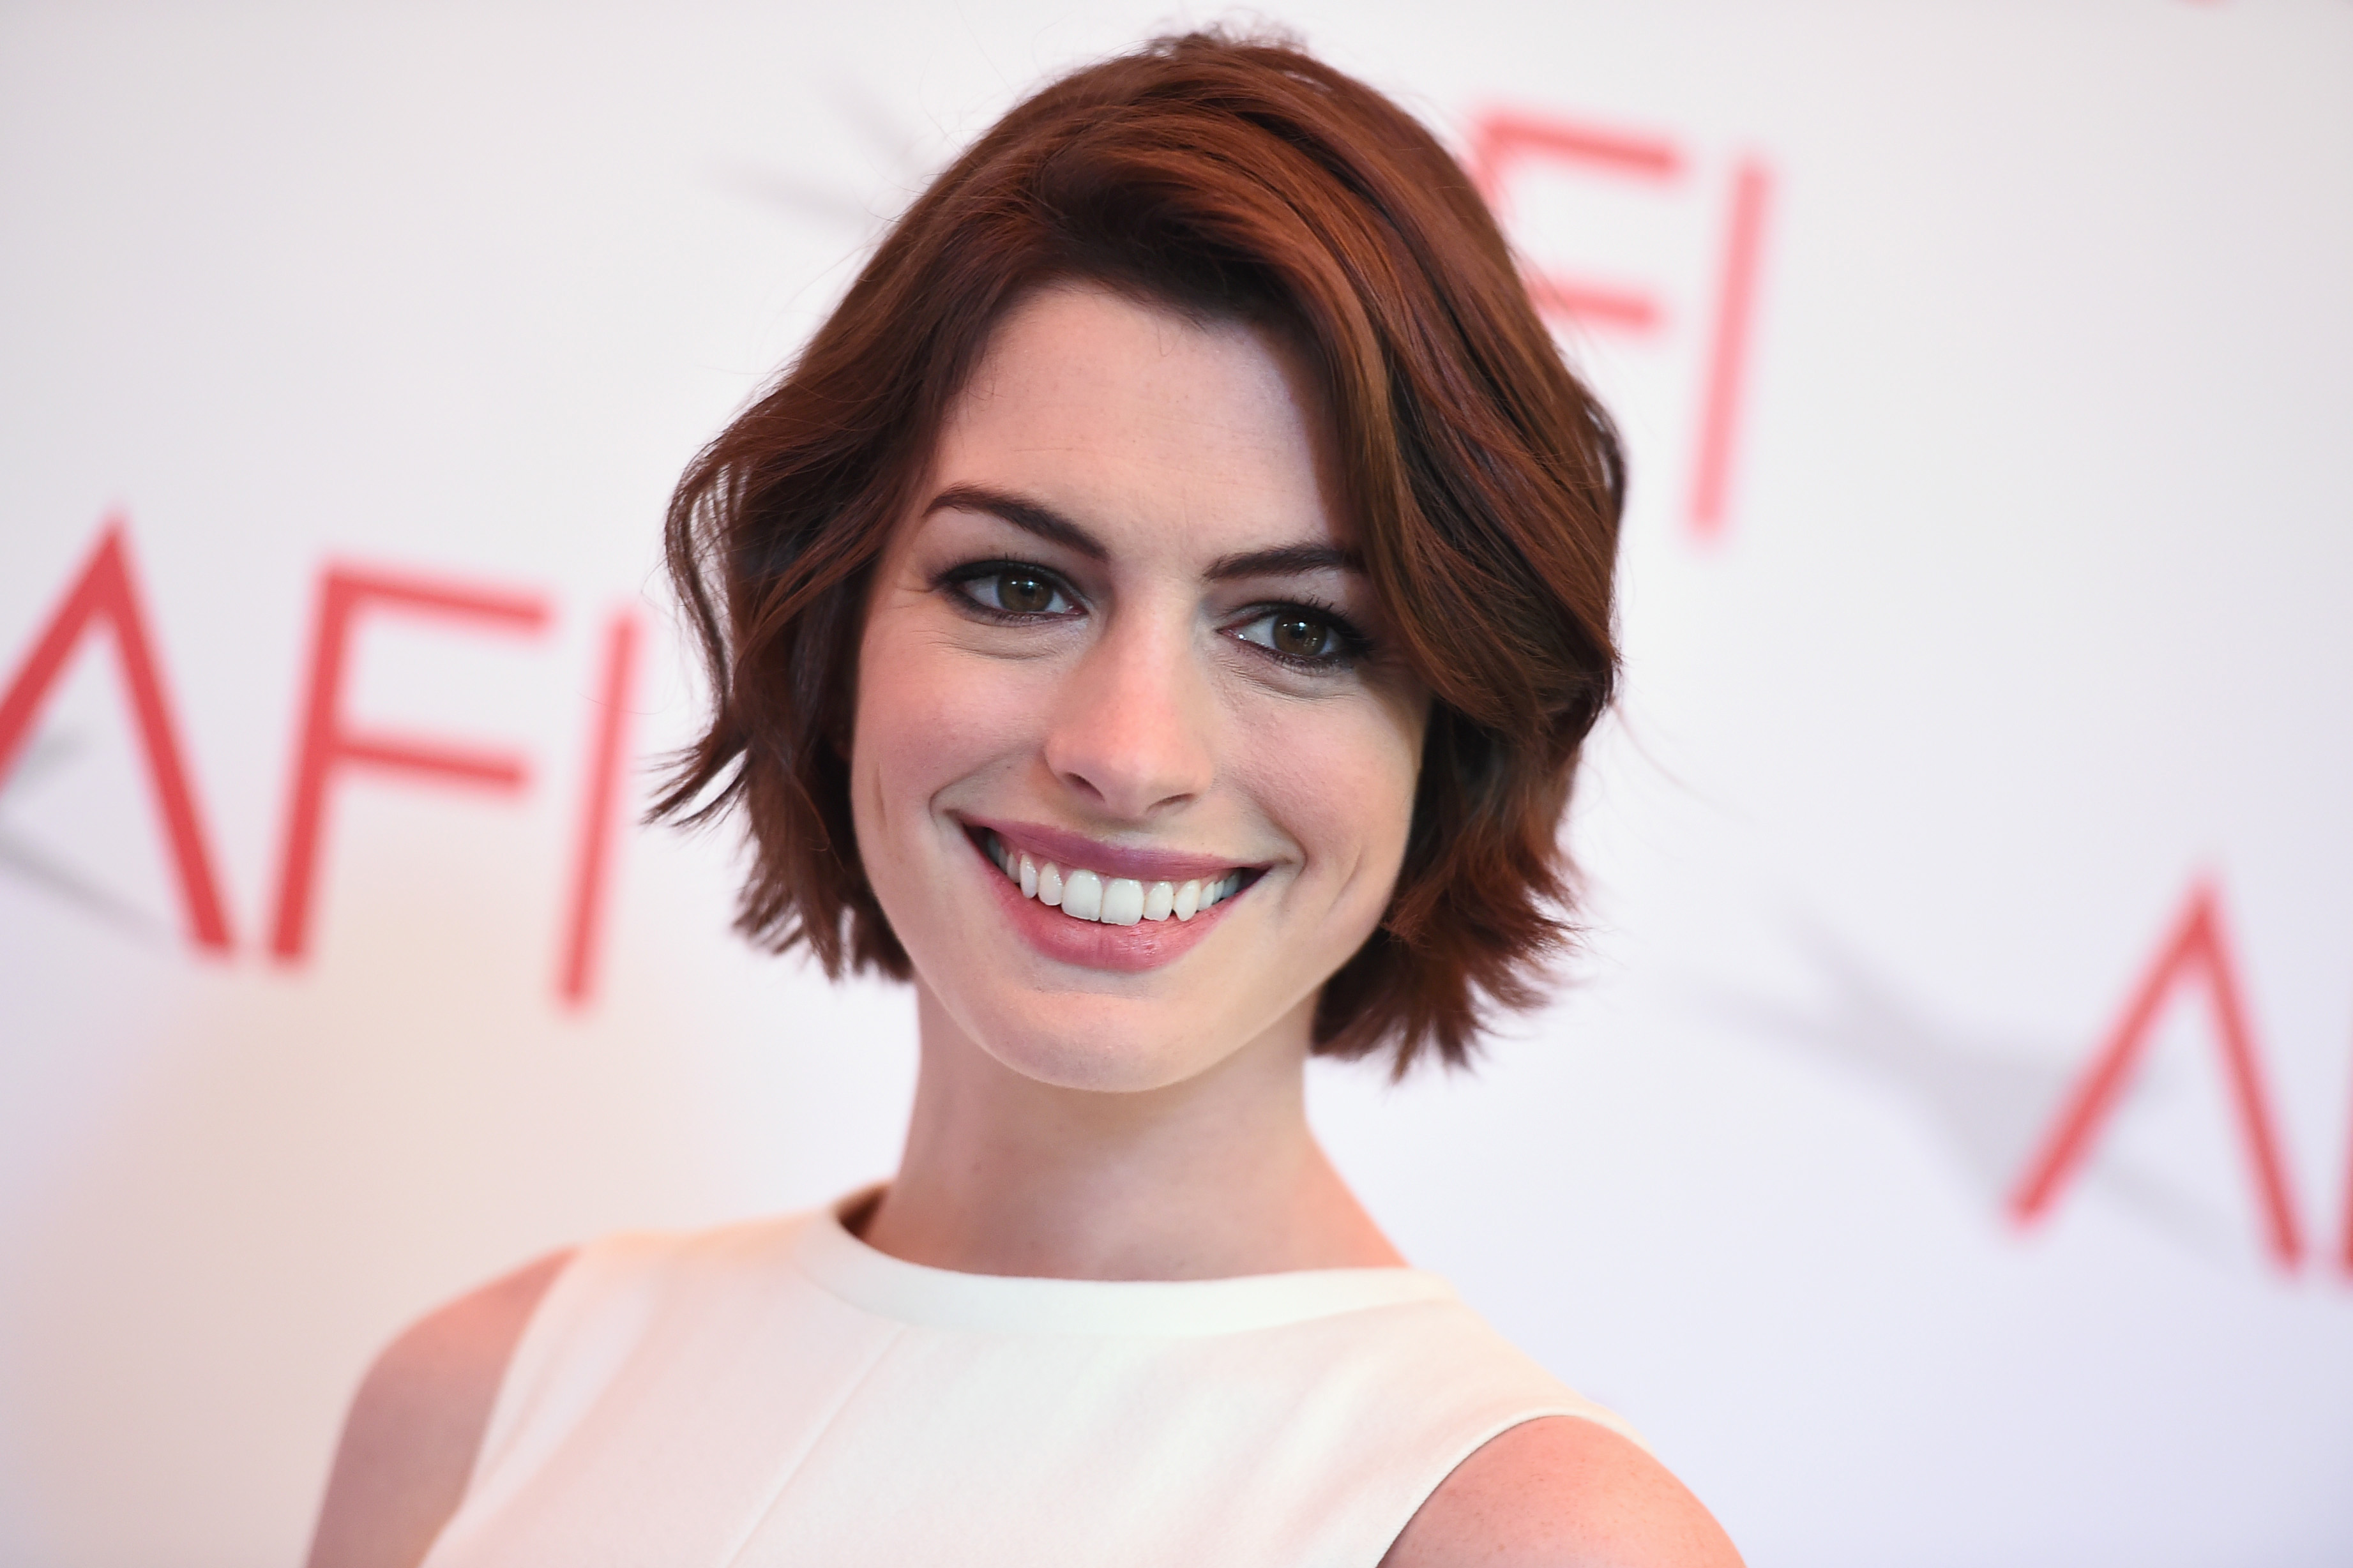 anne hathaway 2015 wallpapers - photo #42